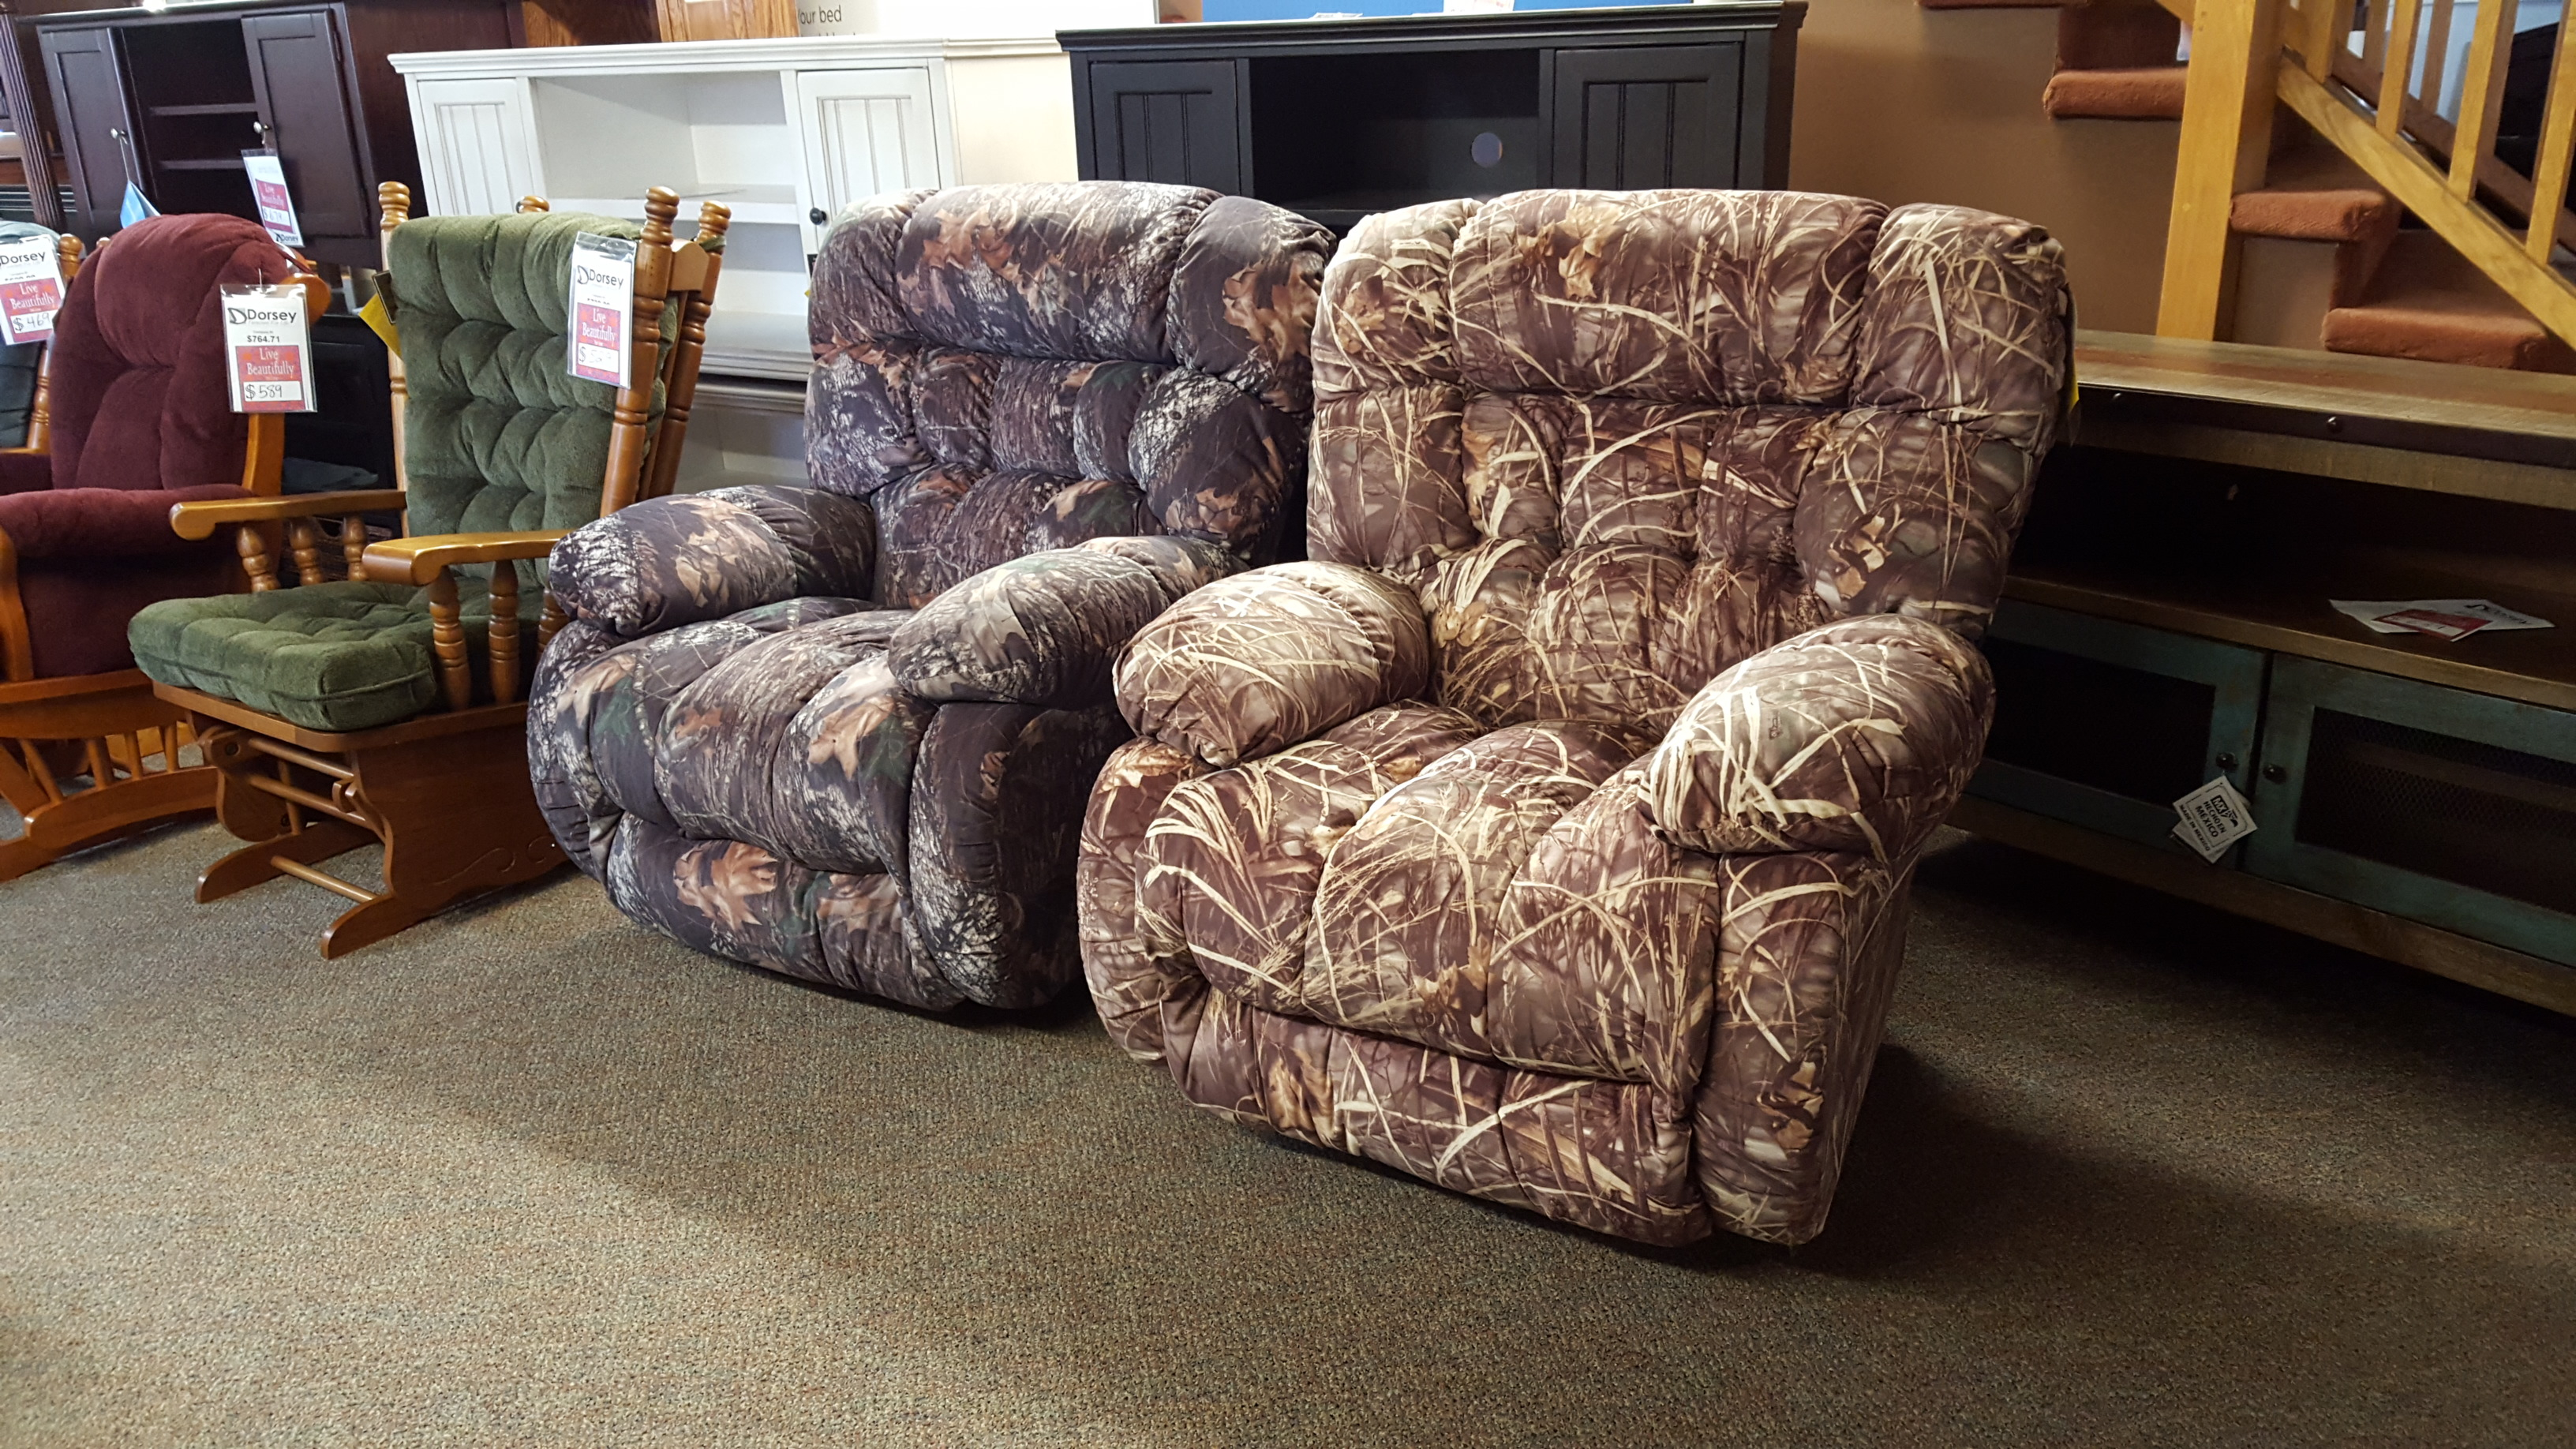 Best Chair Camo Recliners Furniture Store Bangor Maine Living with 13 Genius Ways How to Improve Camouflage Living Room Sets